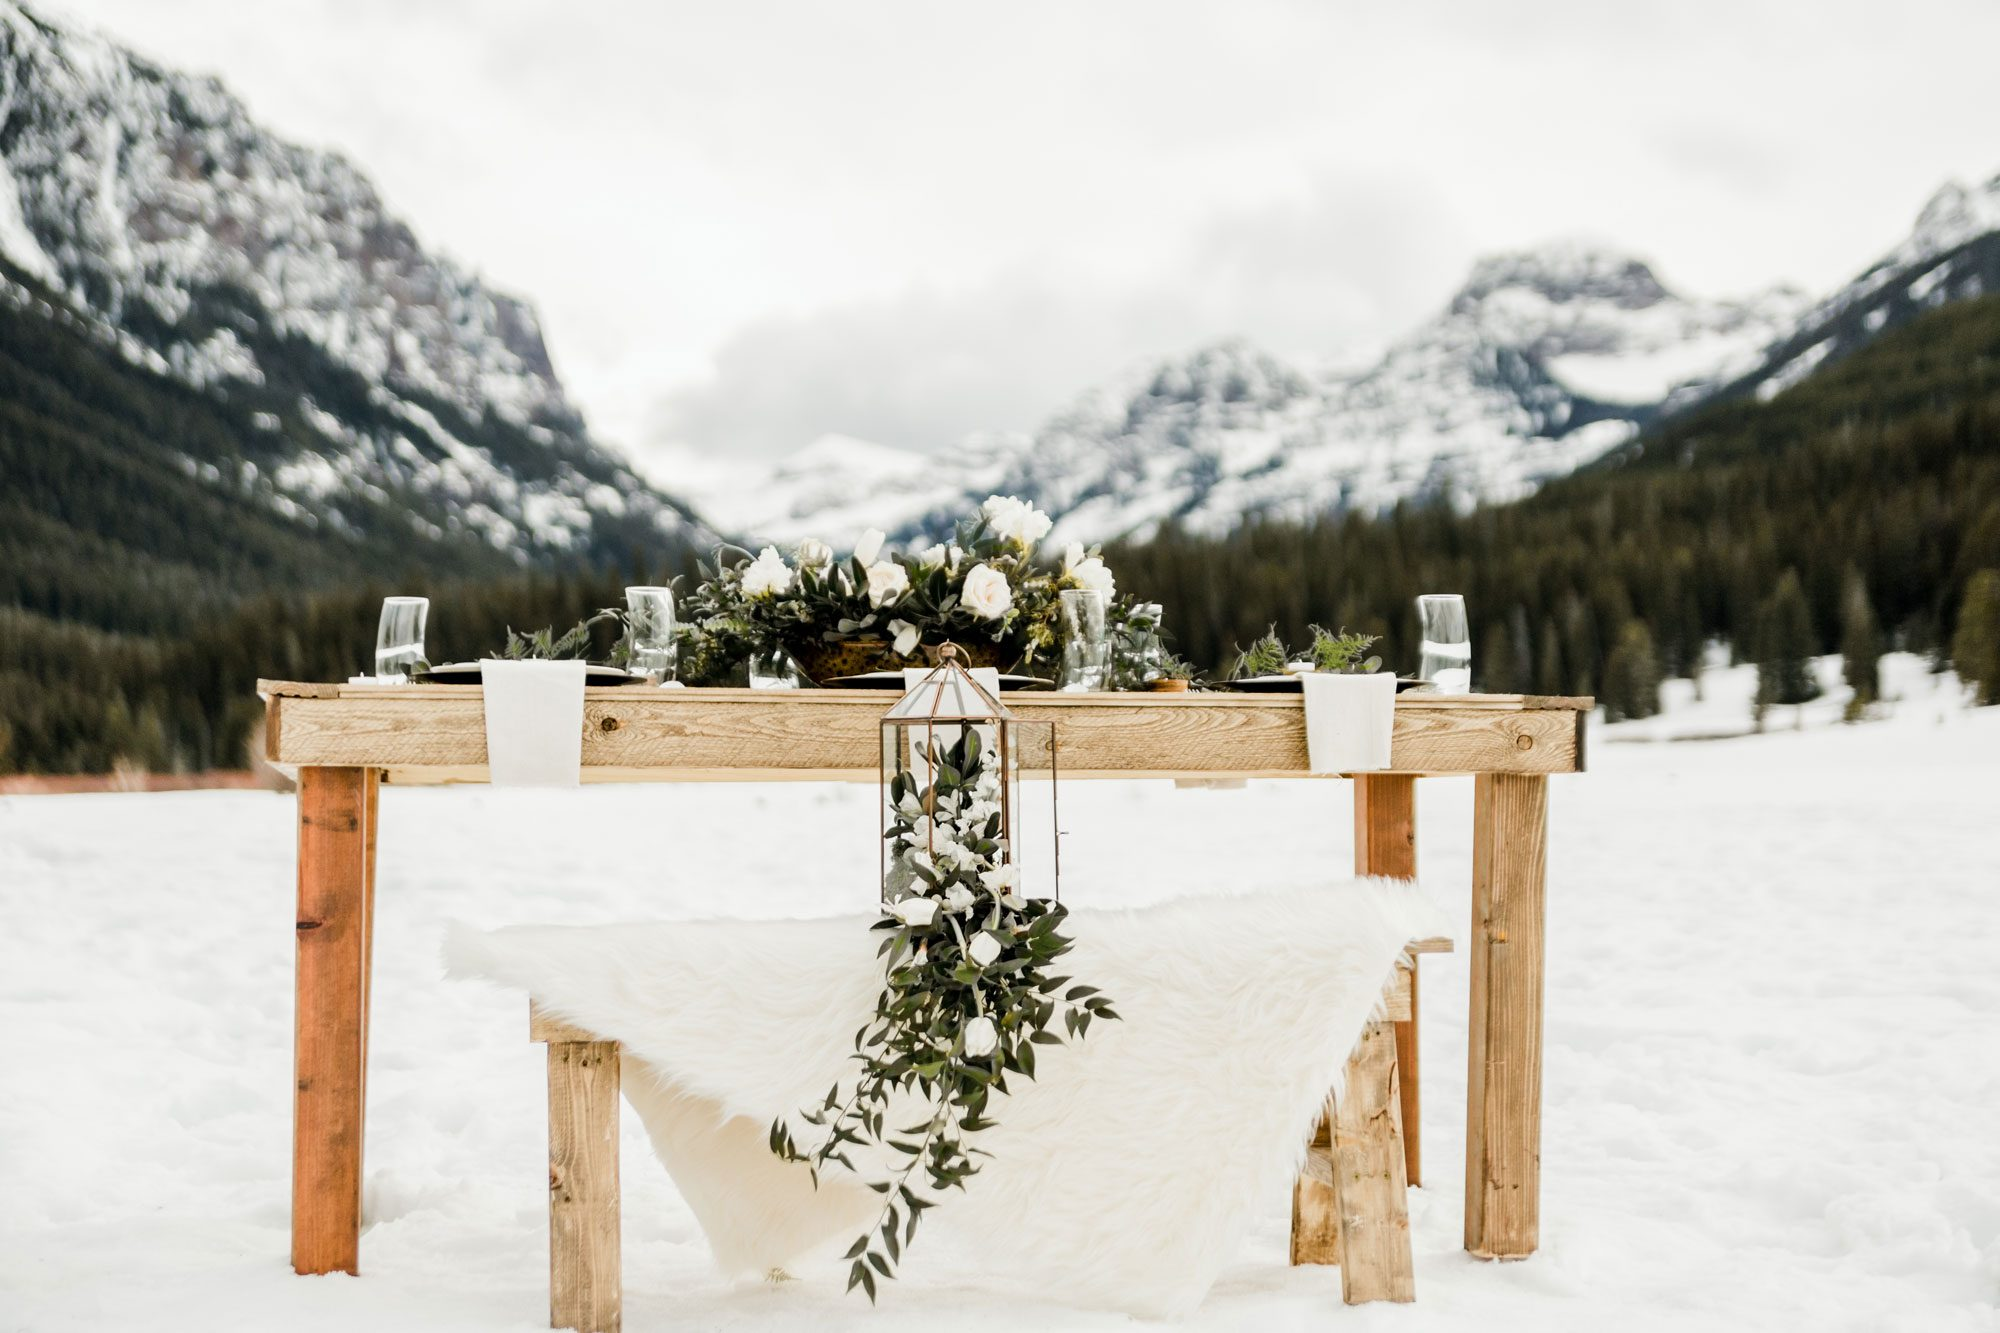 A winter tablescape in the mounatins with wood, metal, white florals & greenery accents